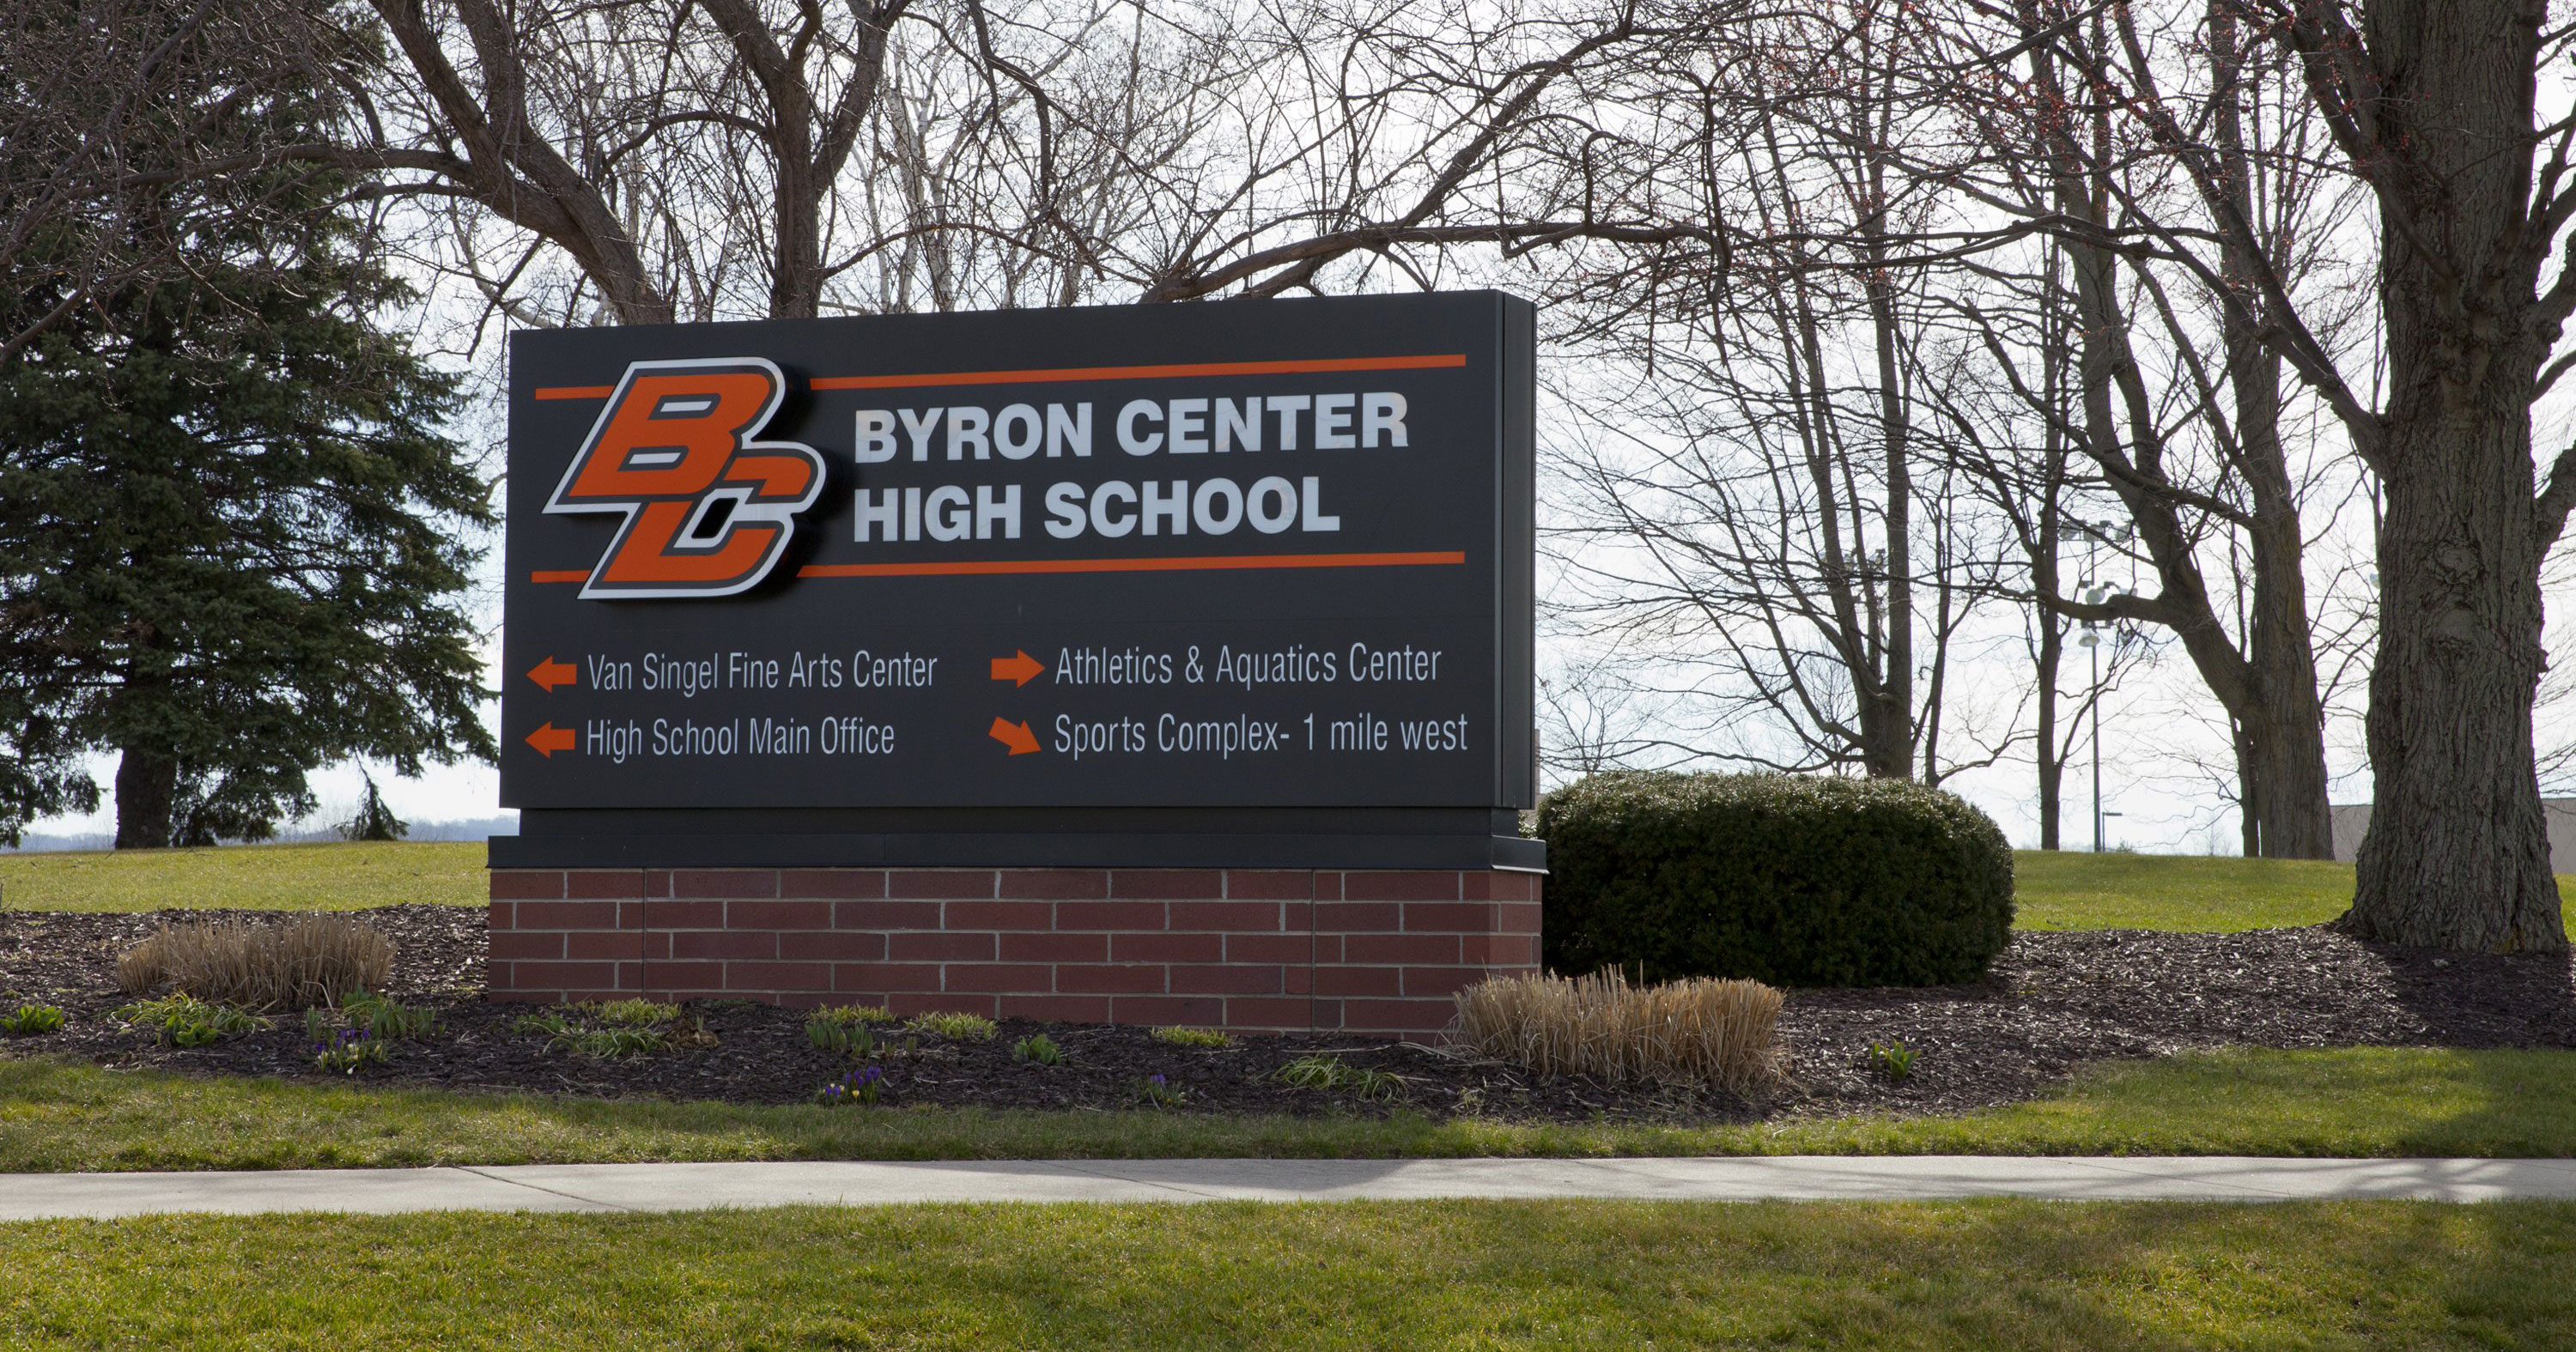 Byron Center High School